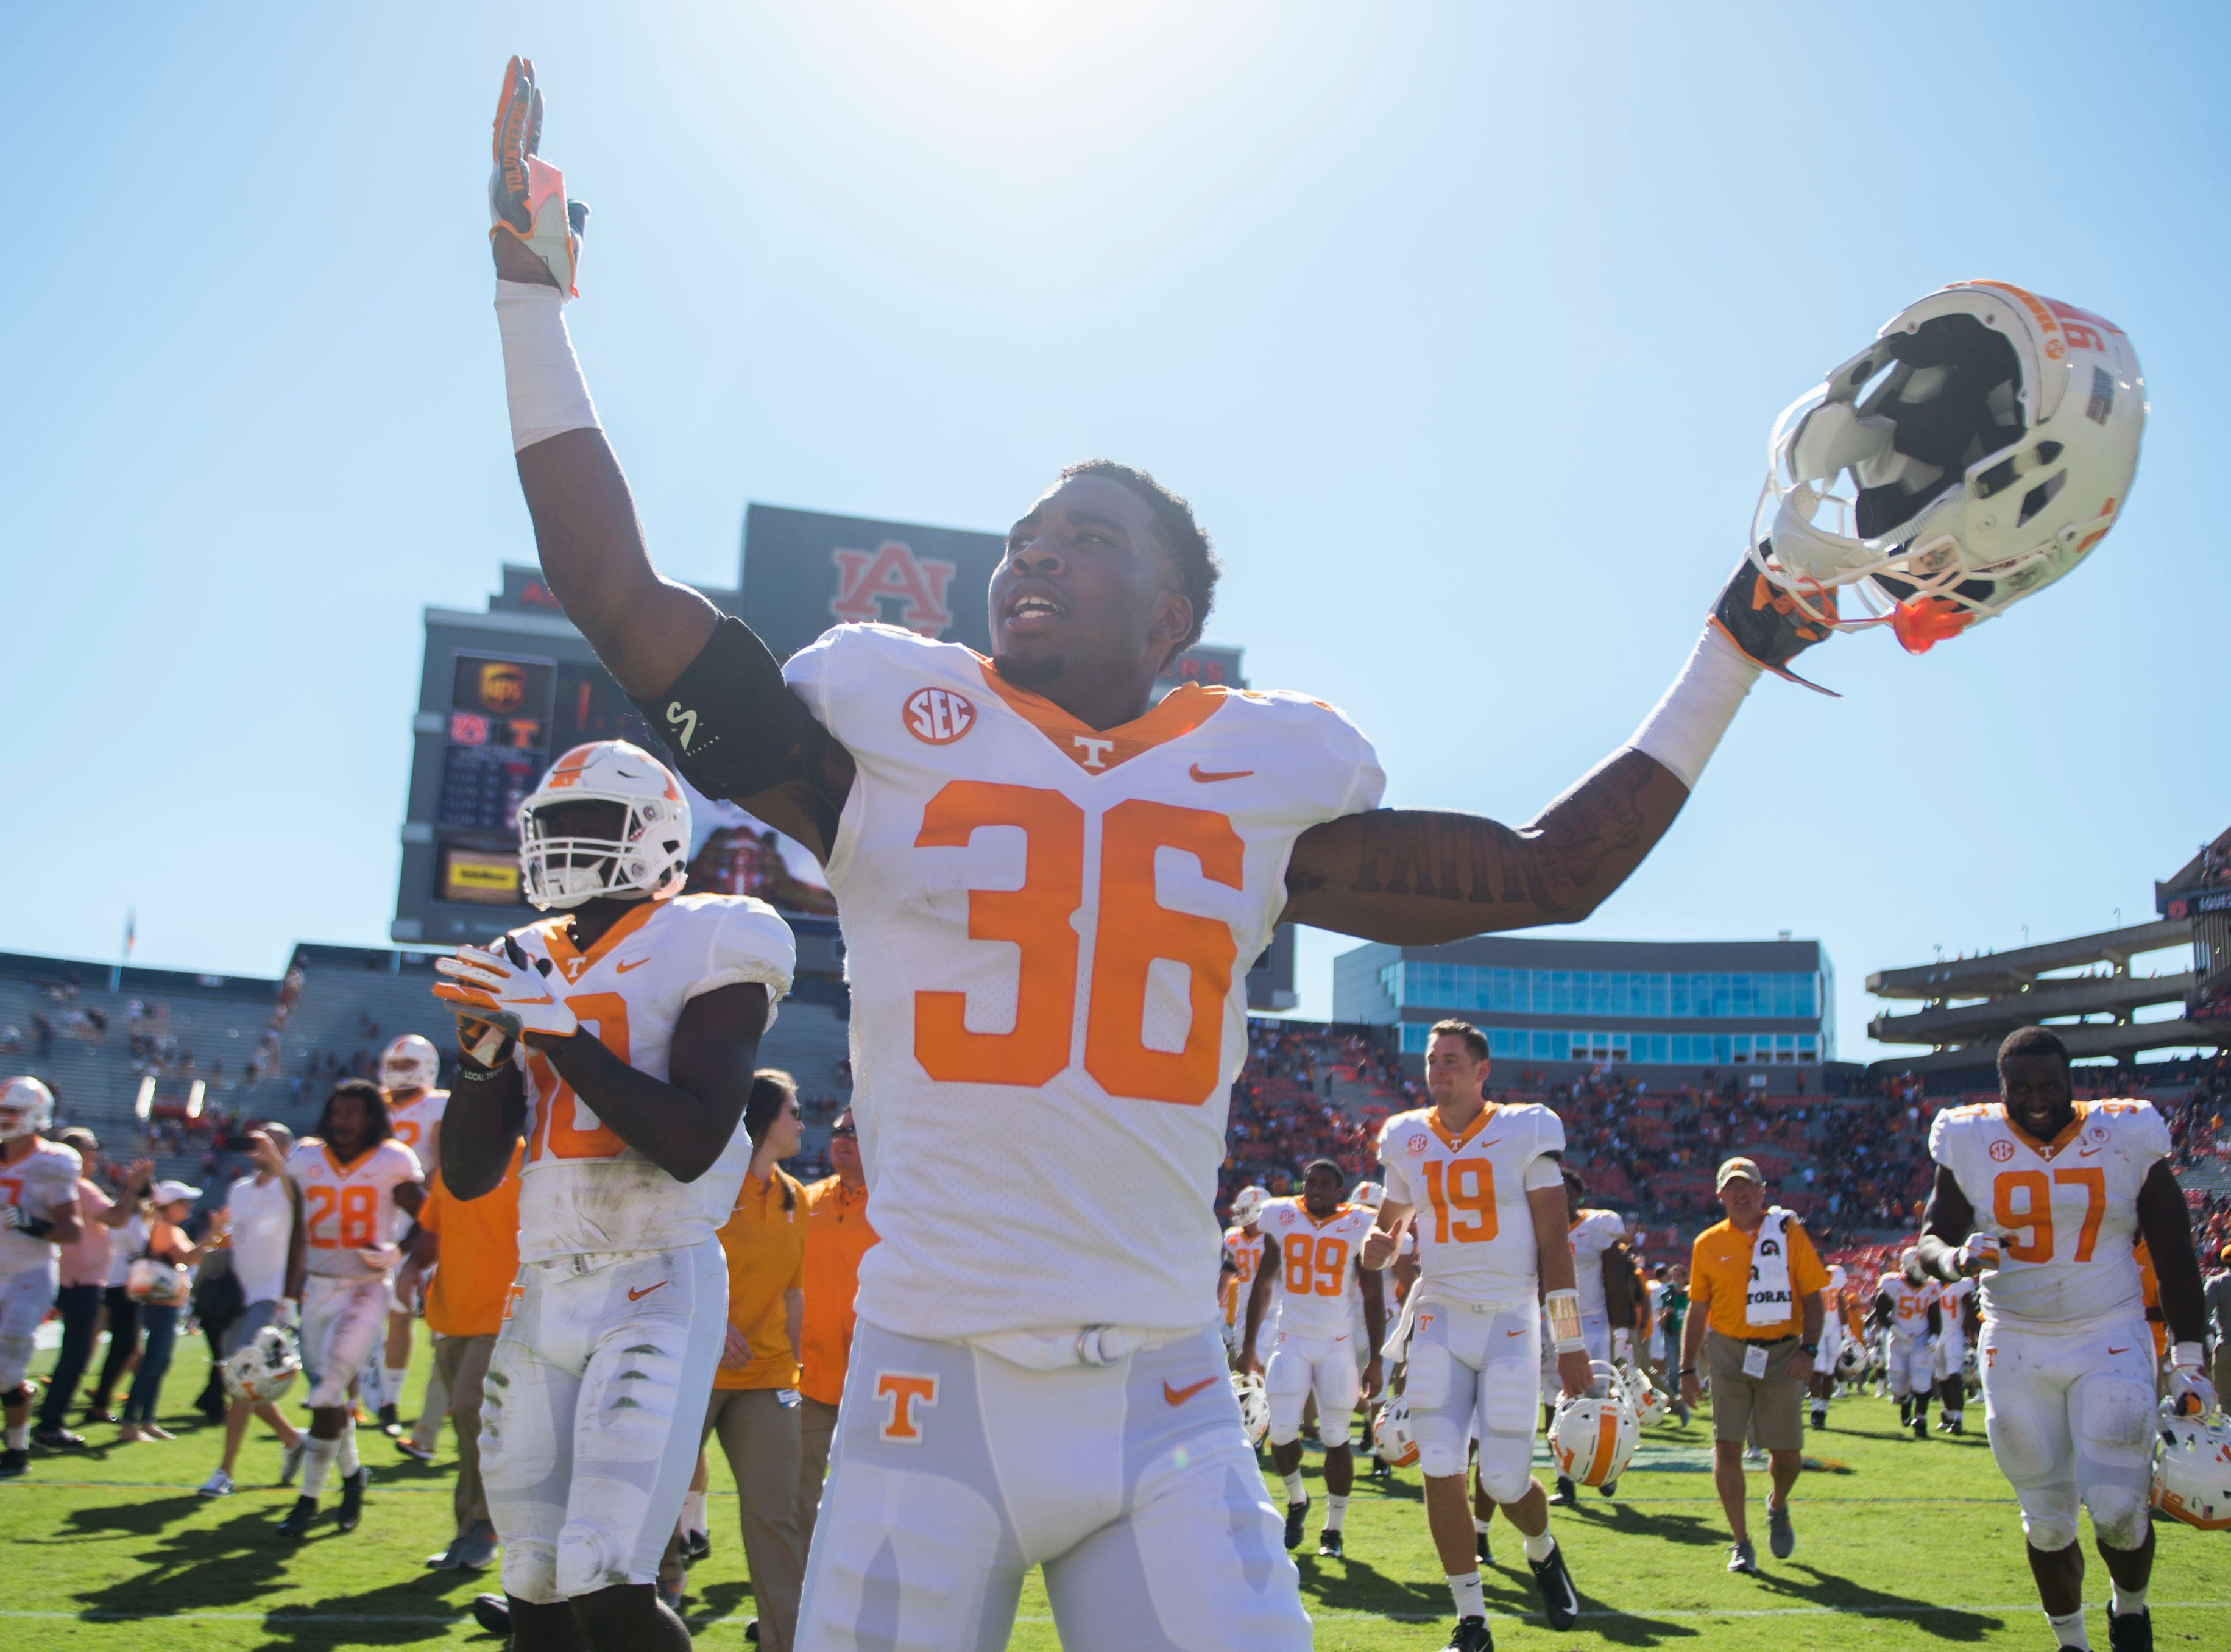 Tennessee defensive back Terrell Bailey (36) celebrates after a game between Tennessee and Auburn at Jordan-Hare Stadium in Auburn, Ala. Saturday, Oct. 13, 2018. Tennessee defeated Auburn 30-24.